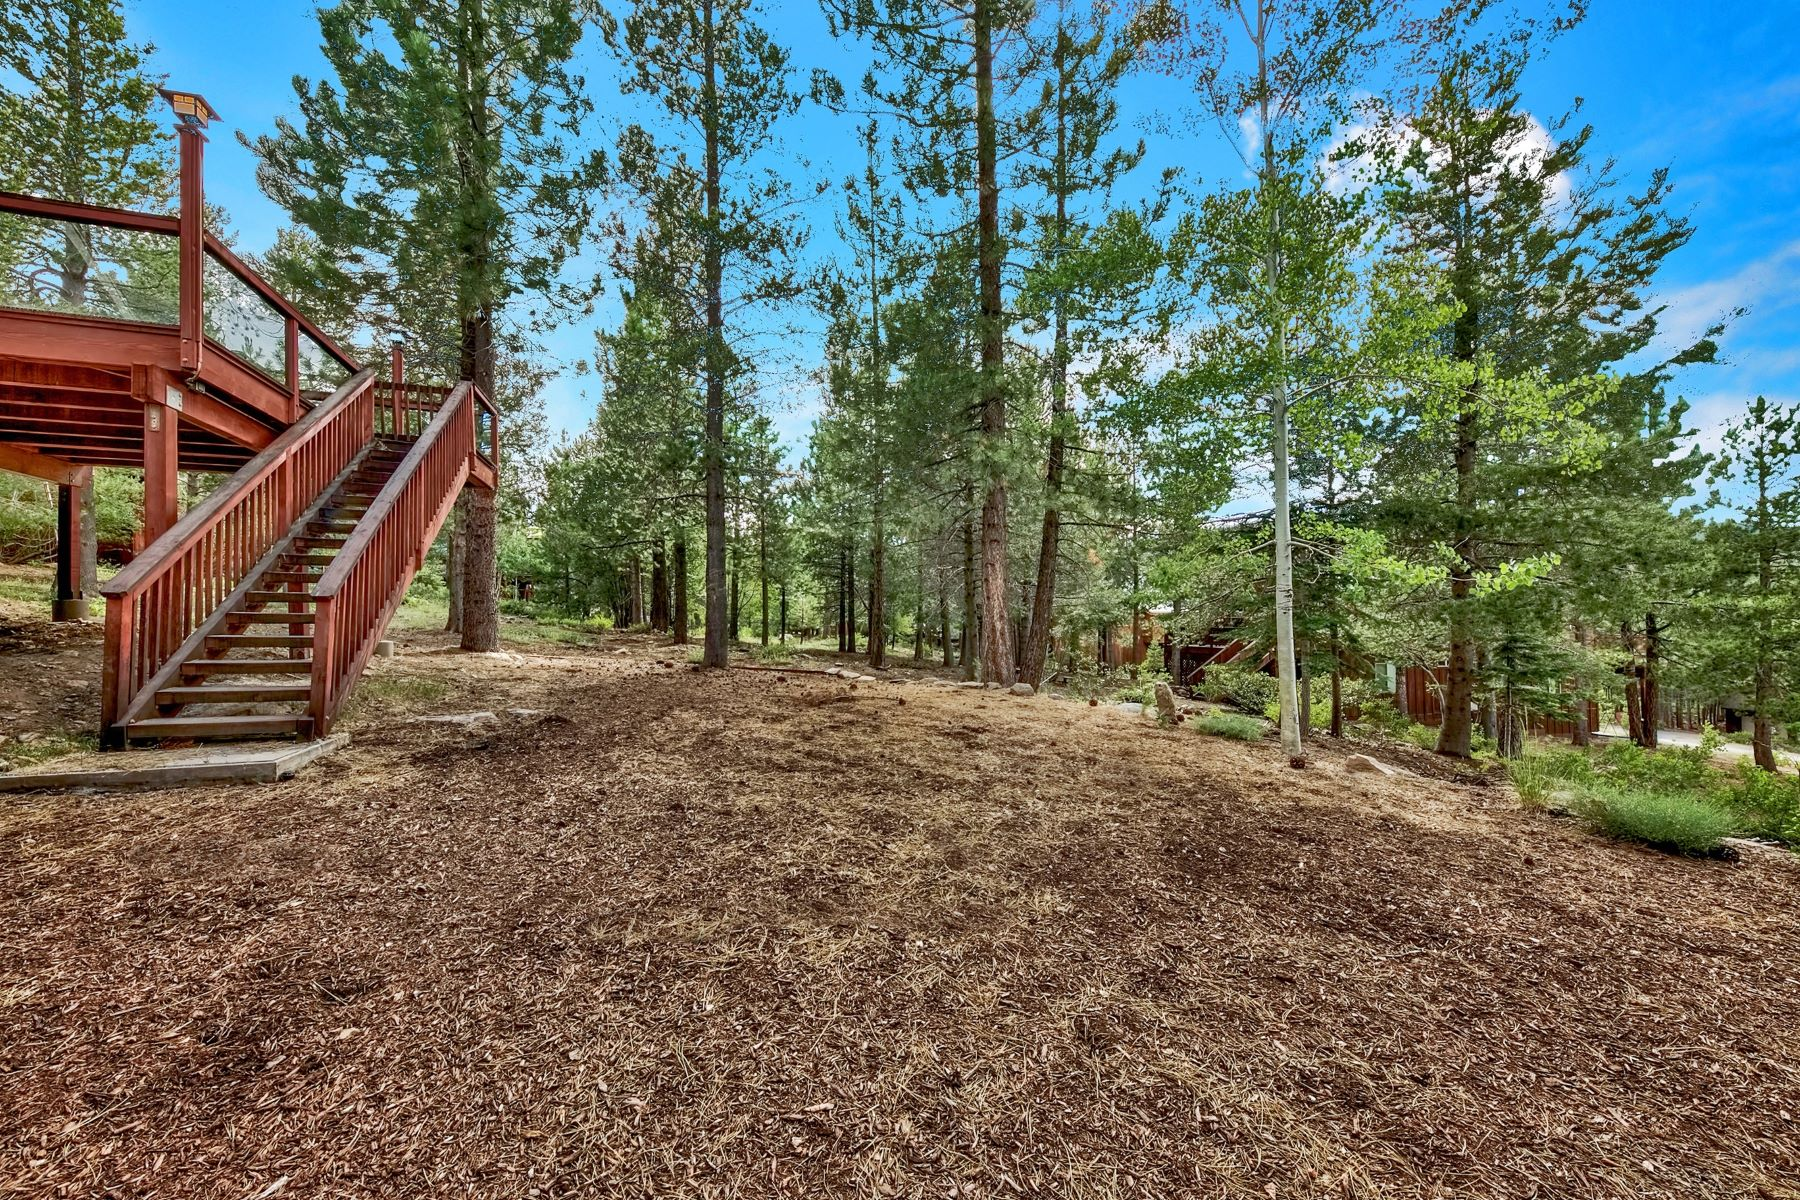 Additional photo for property listing at 12464 Snowpeak Way, Truckee, CA 96161 12464 Snowpeak Way Truckee, California 96161 United States